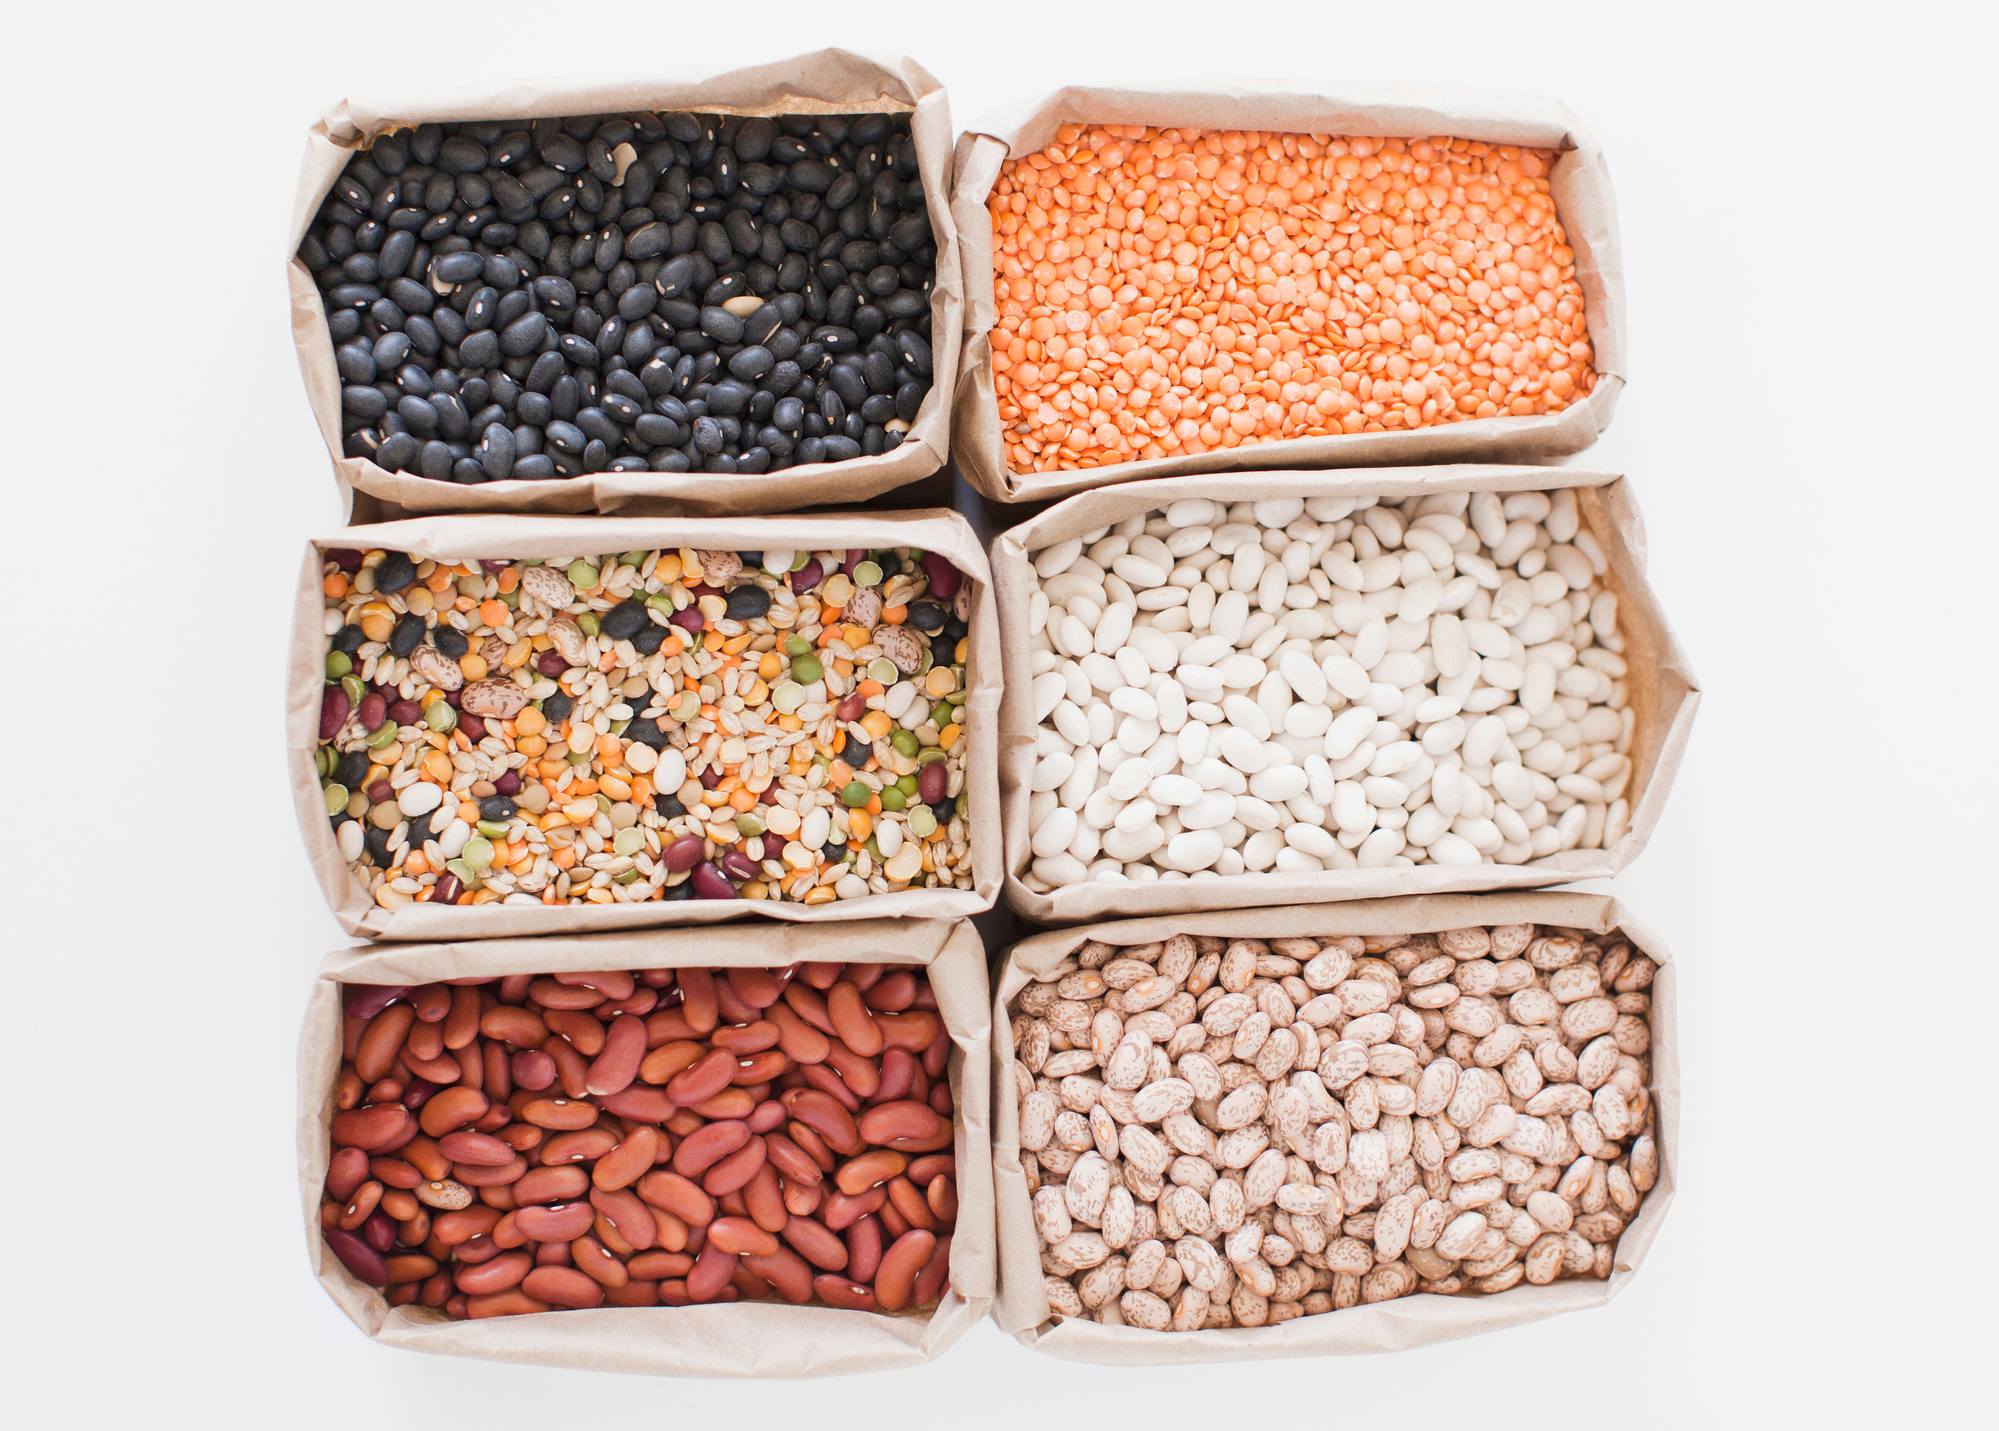 Dry Beans in Bags